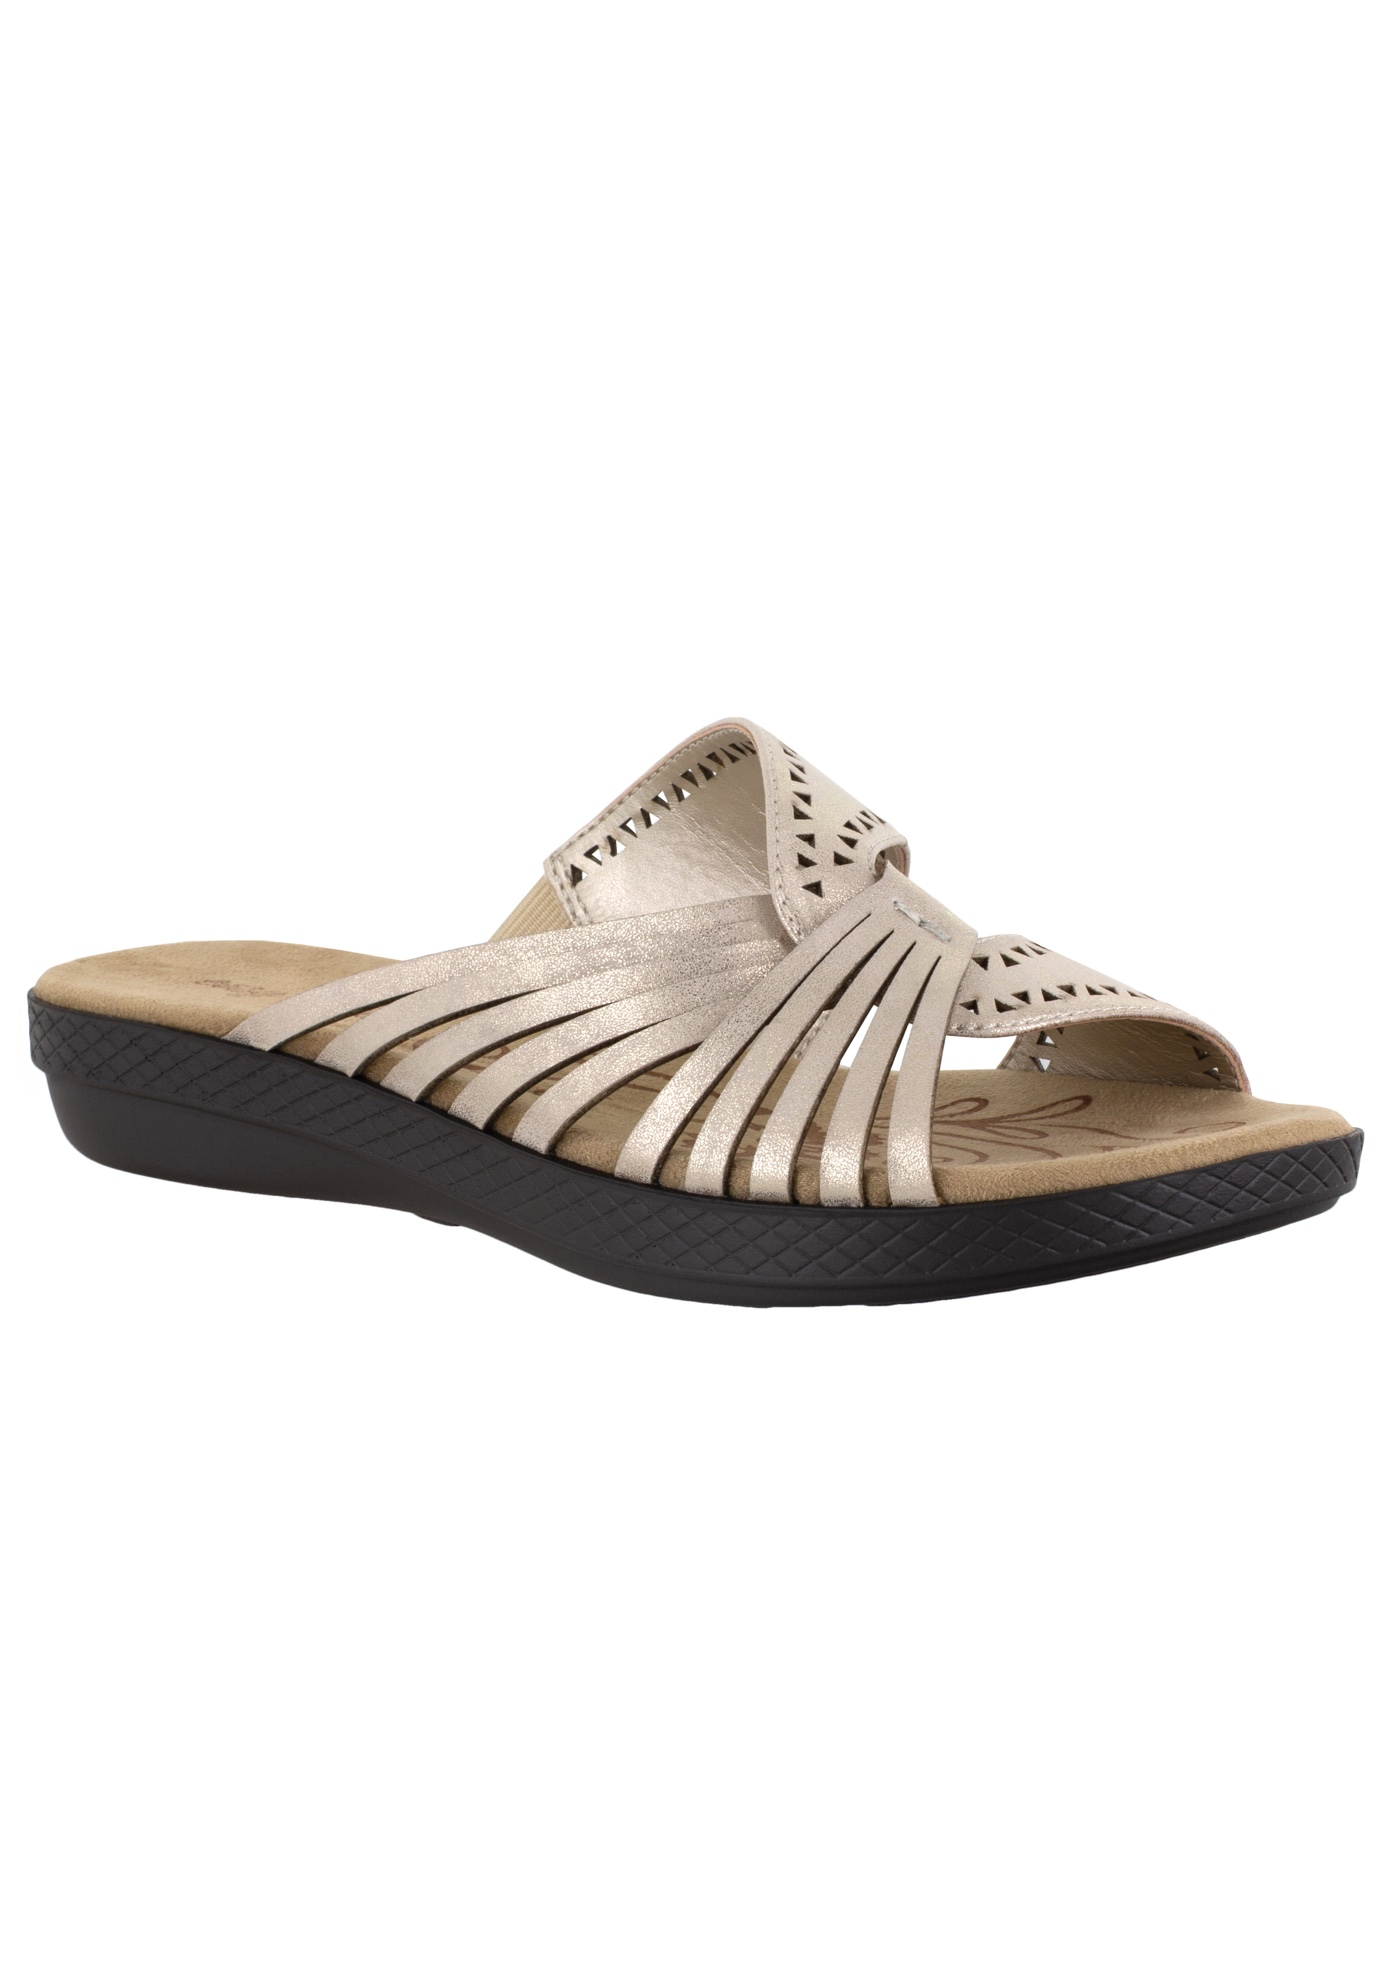 Tula Sandals by Easy Street,